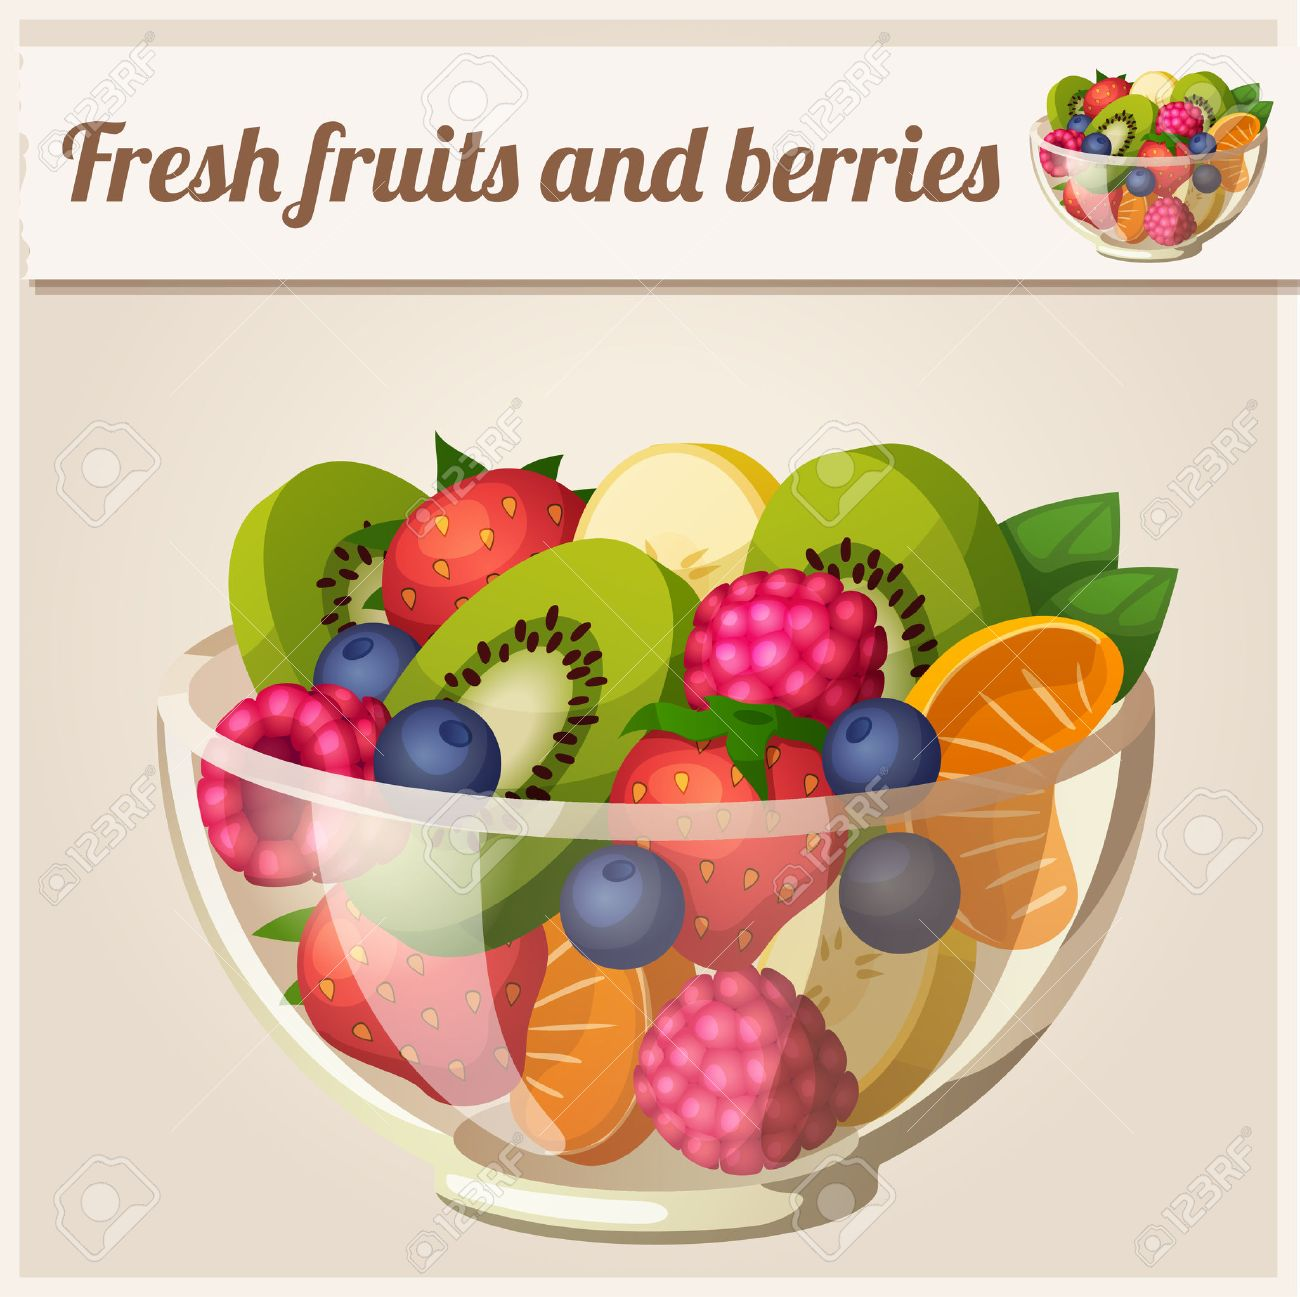 Salad with fresh fruits and berries - 38594135